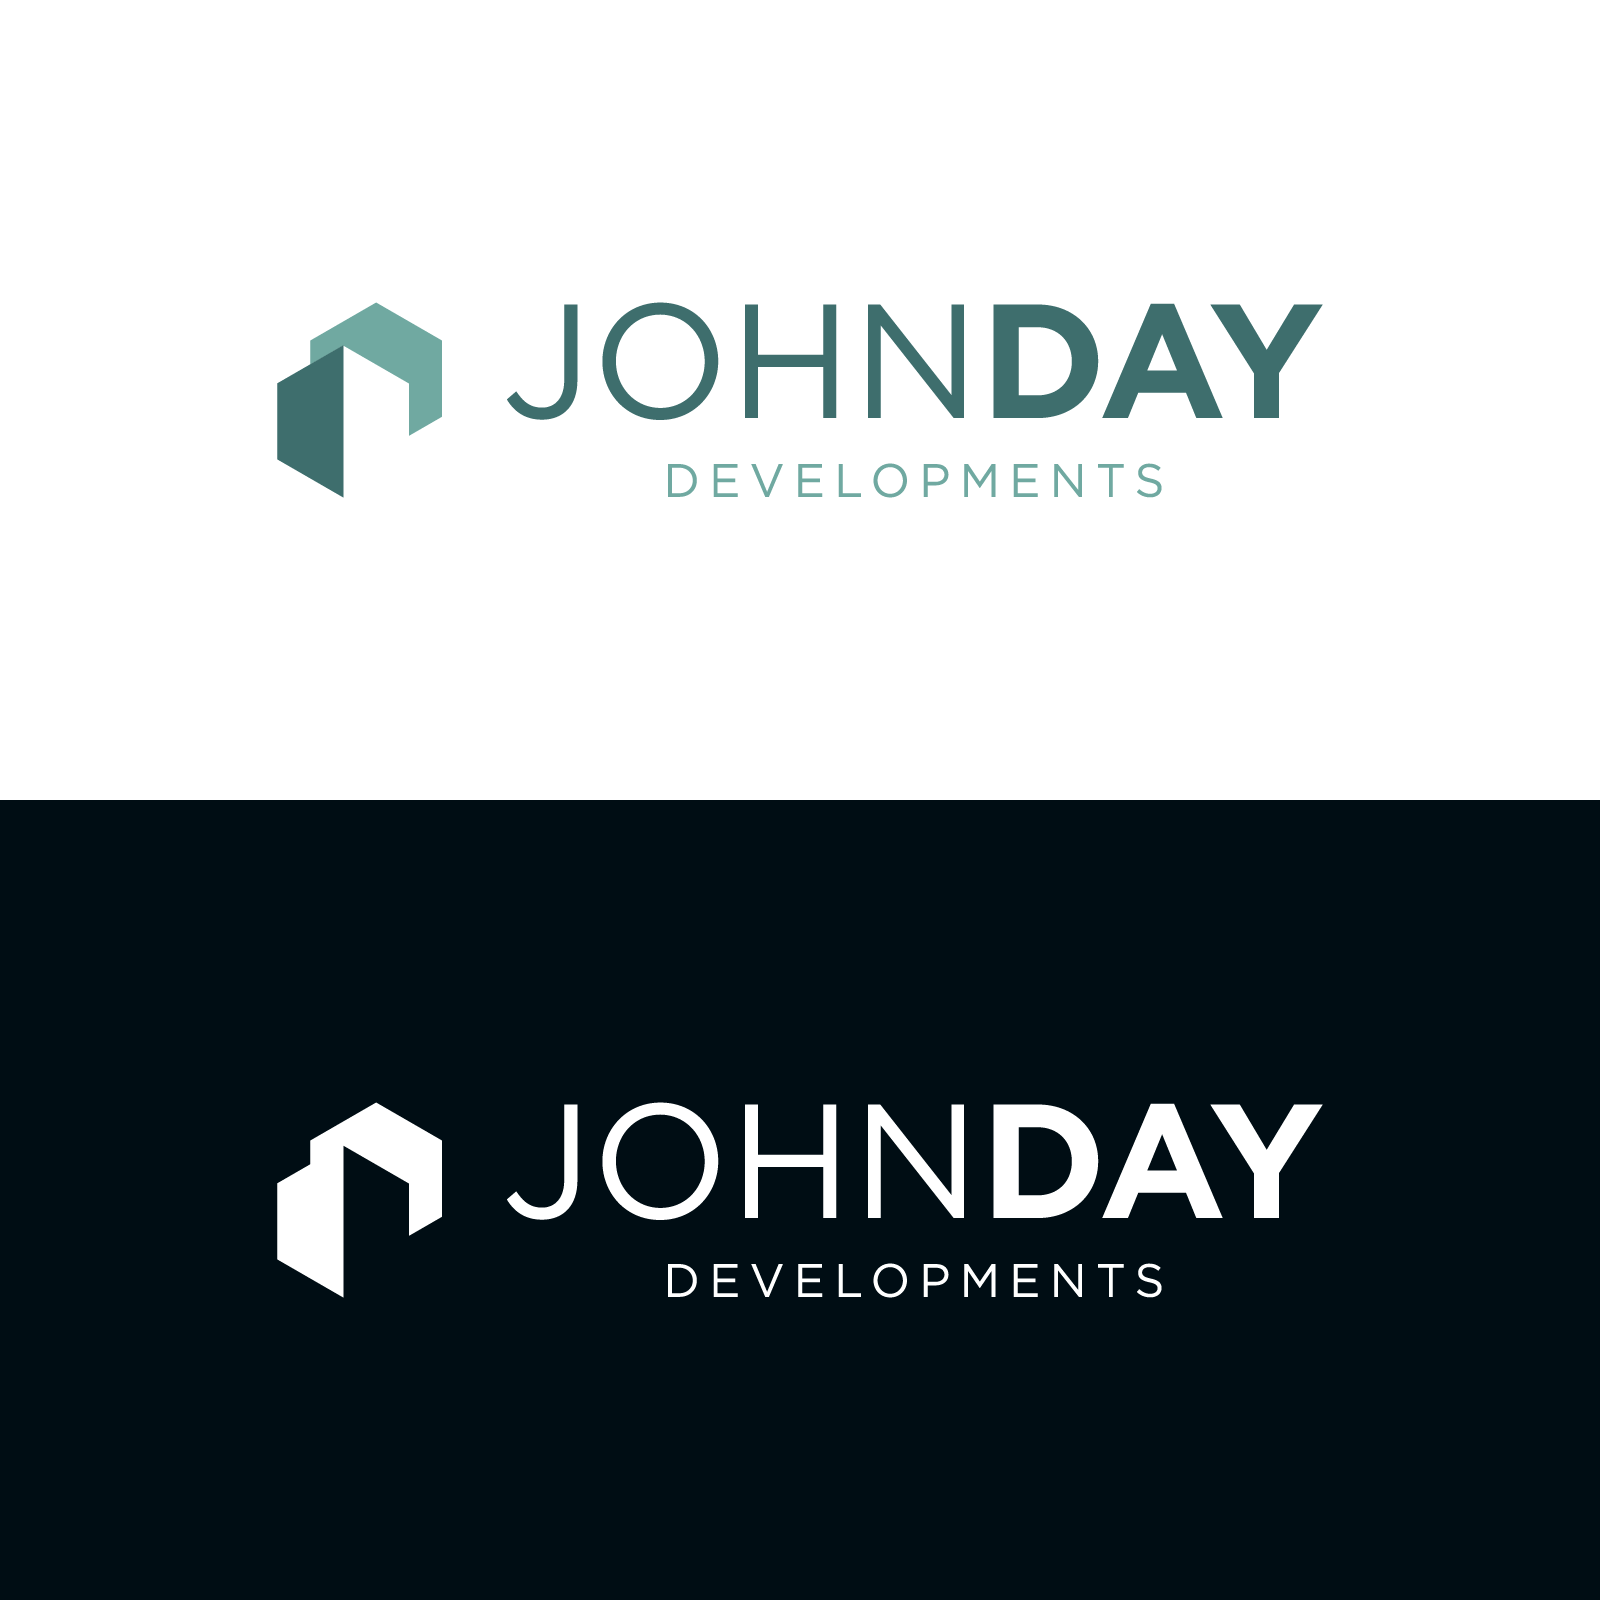 John Day Developments final logo redesign